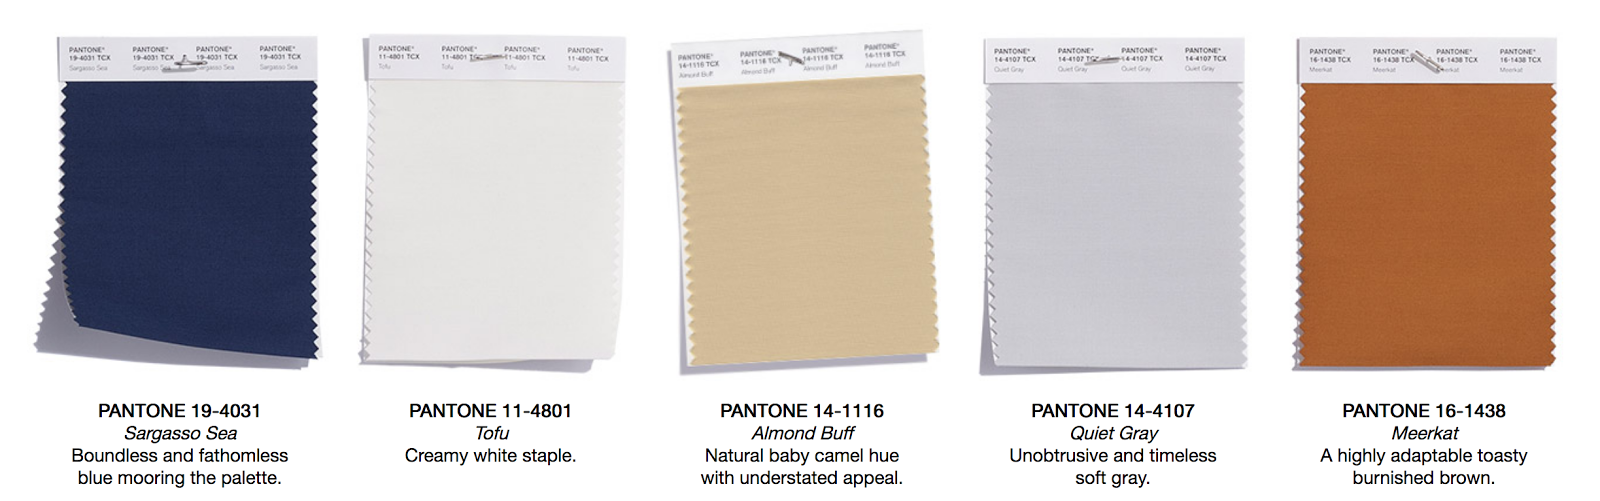 Pantone colour trends a w 2018 2019 kukka for 2018 winter colors